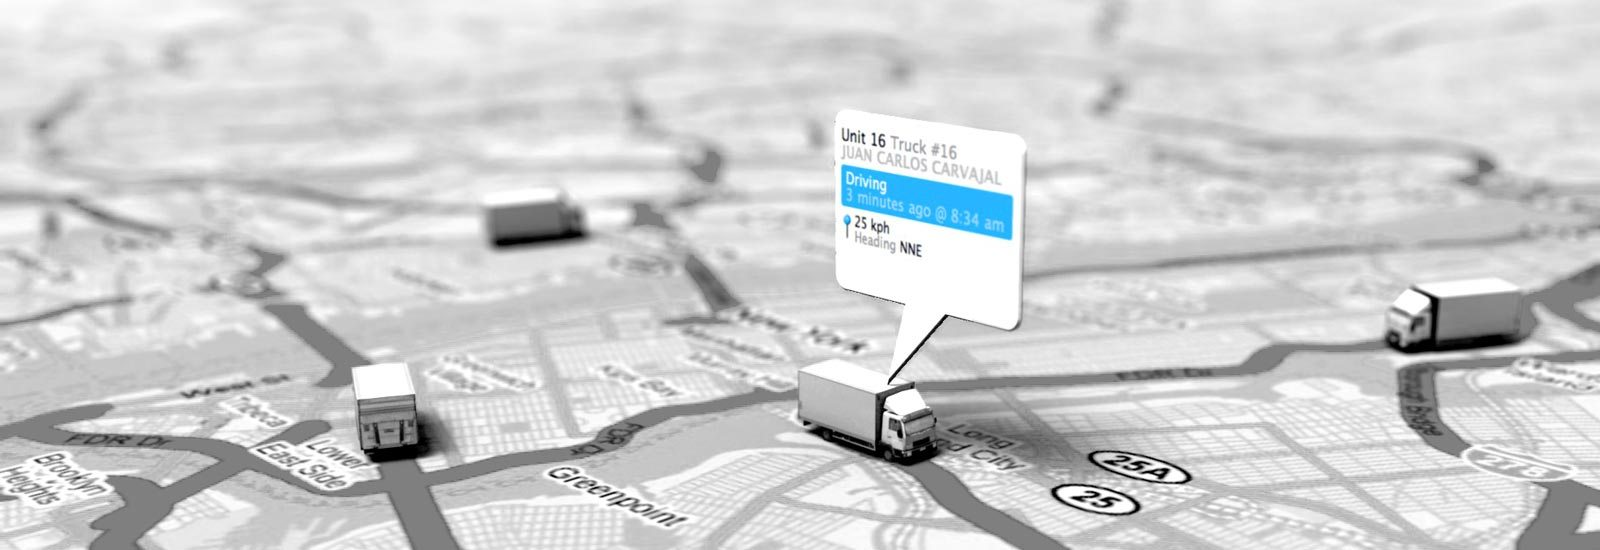 vehicle-tracking-system-installation